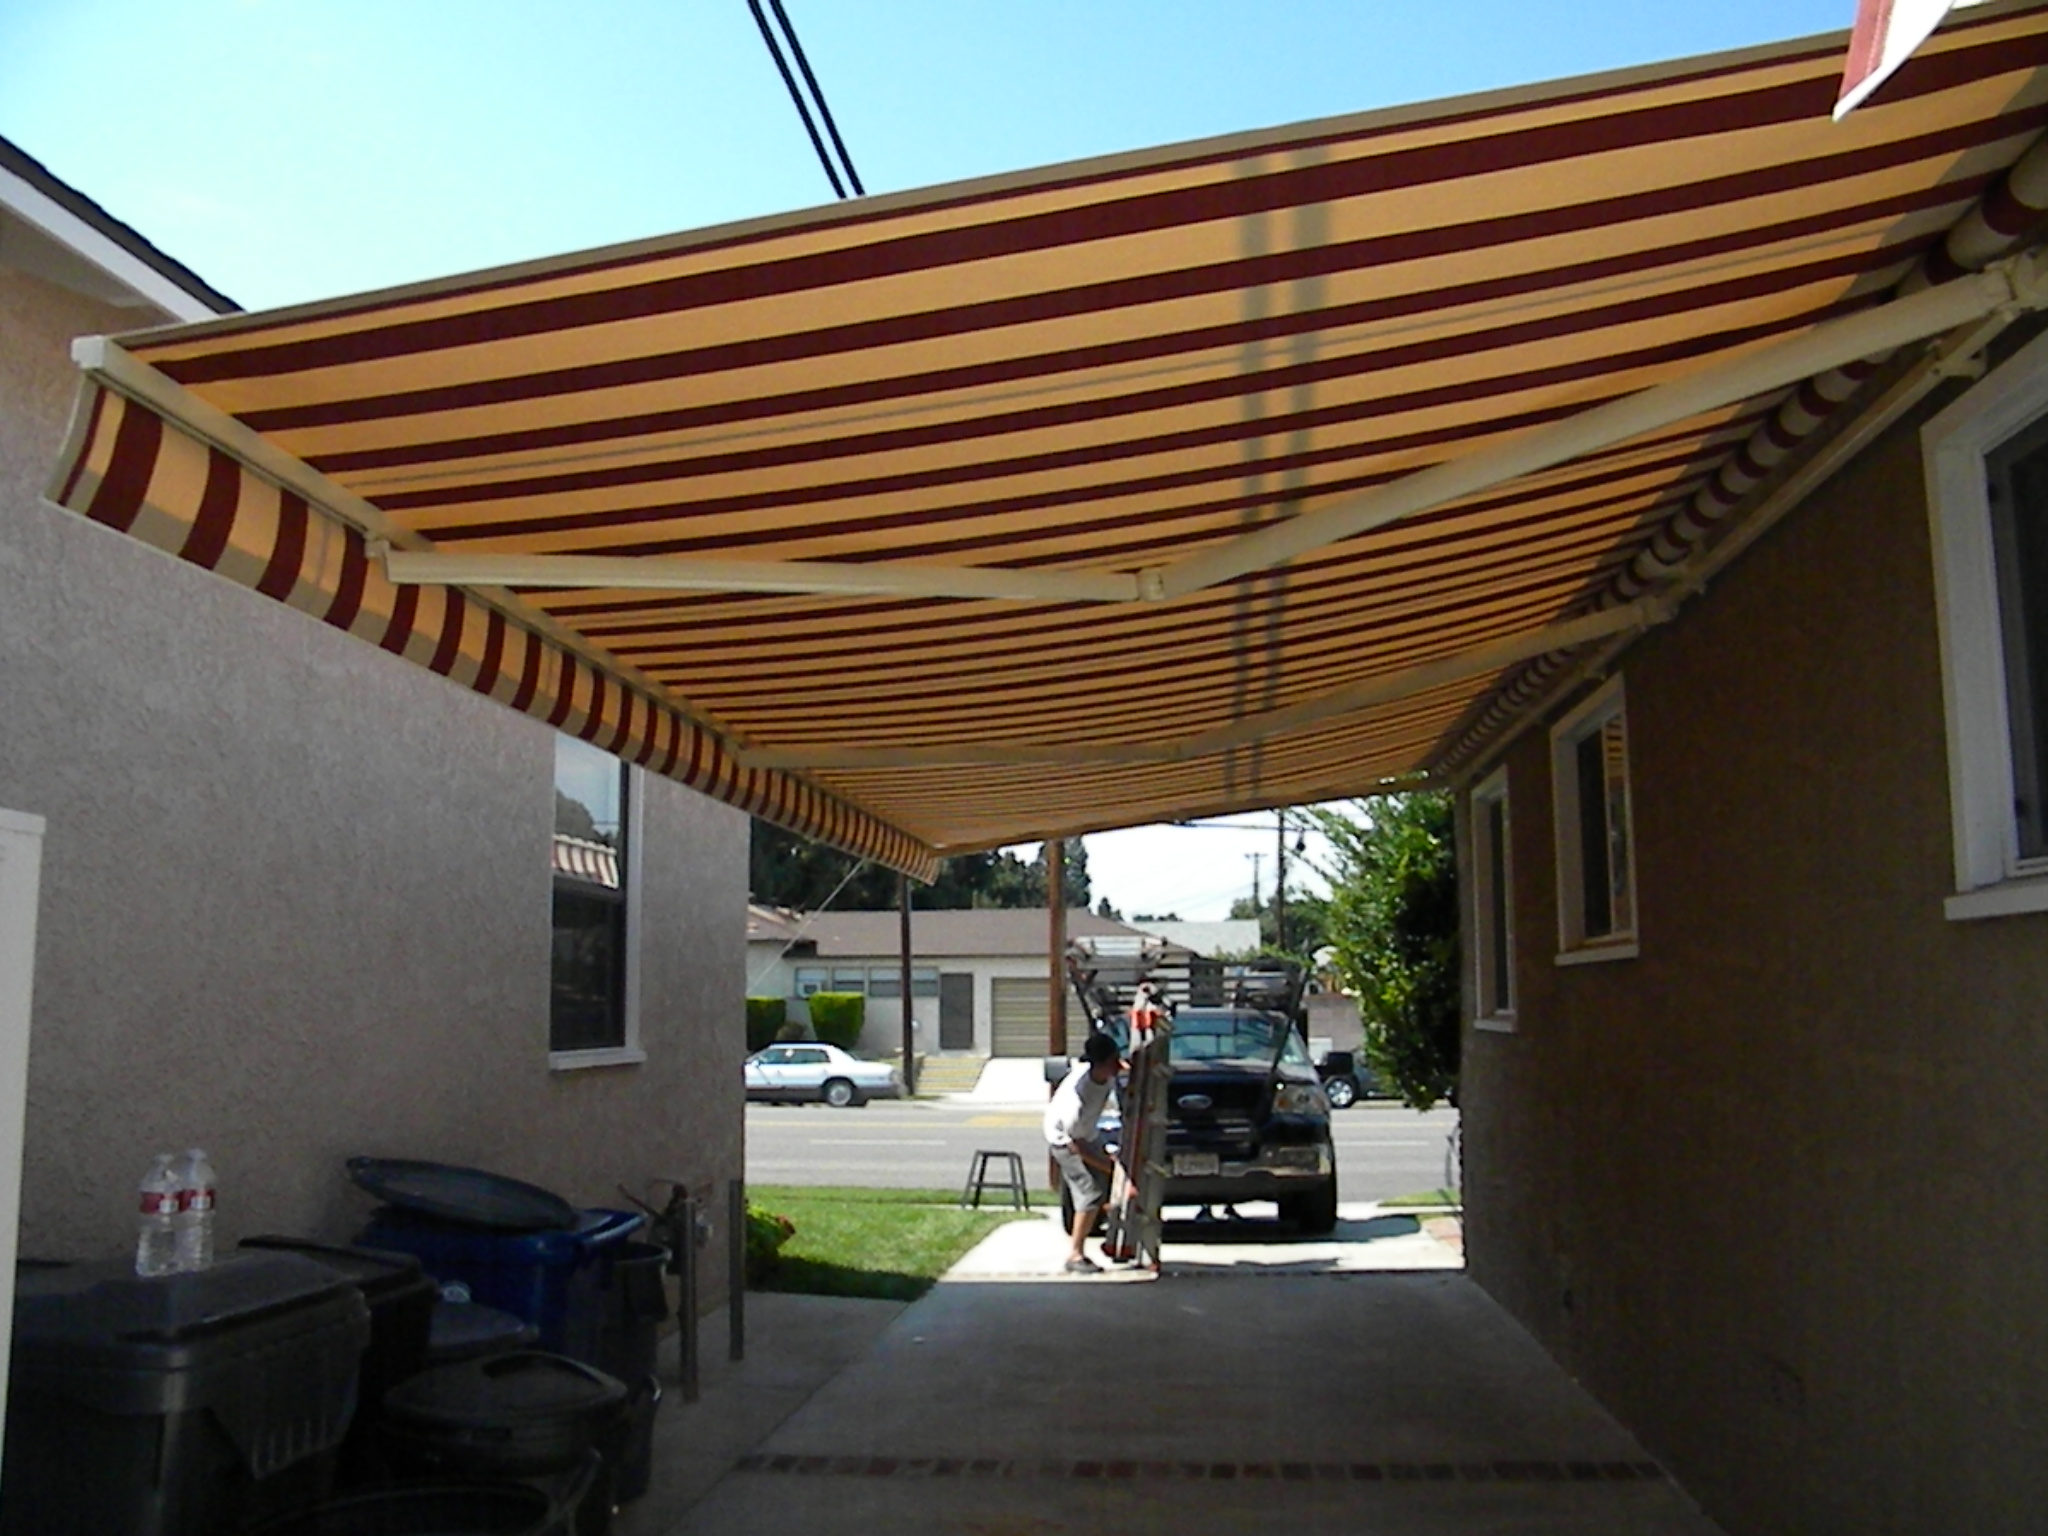 Lateral Arm Awnings | Made in the Shade Awnings